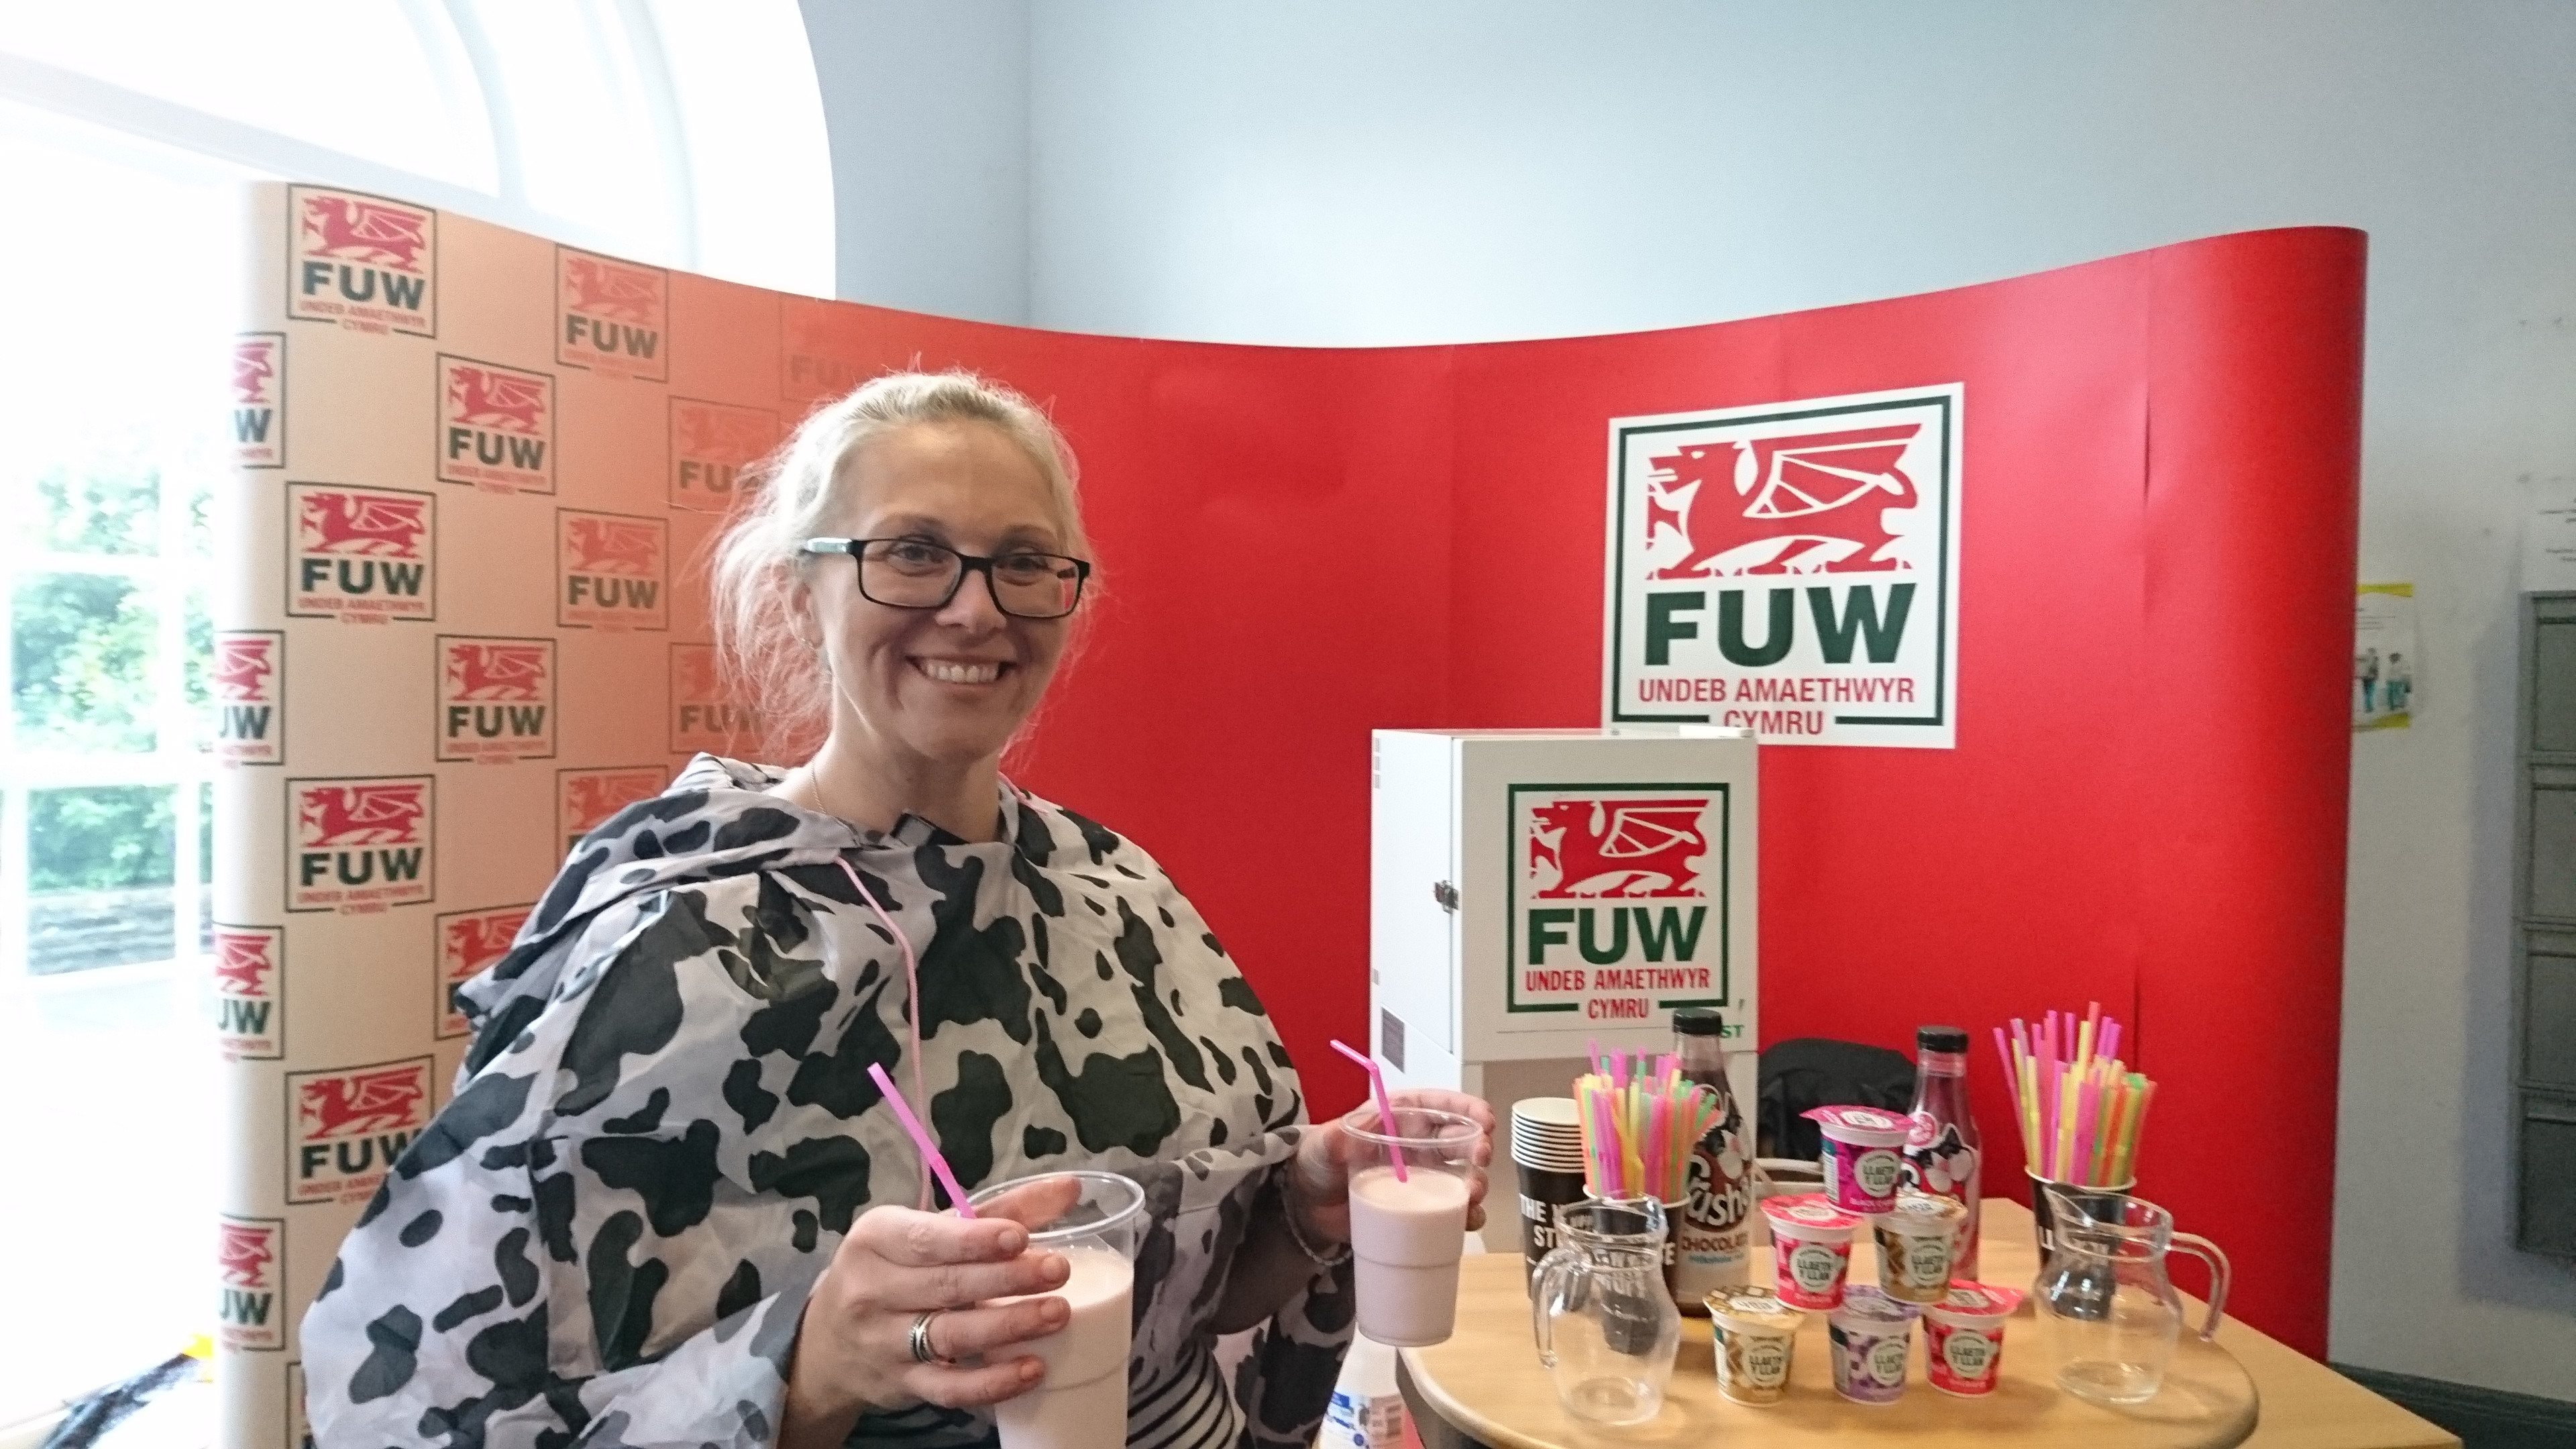 Farming union hands out free samples of milk to Aberystwyth University freshers to show benefits of dairy